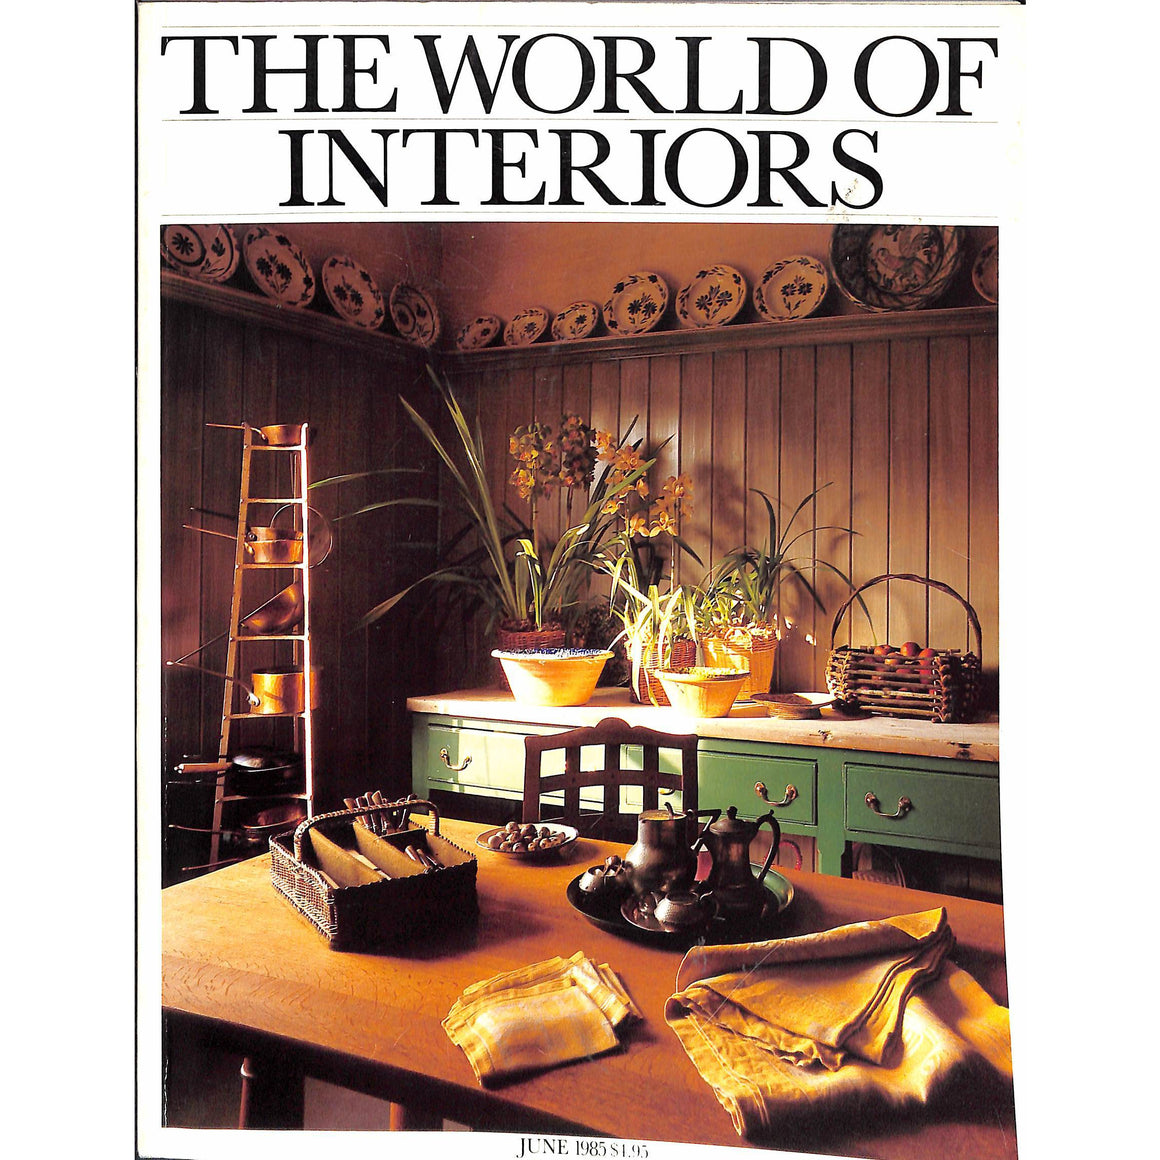 'The World of Interiors June 1985'